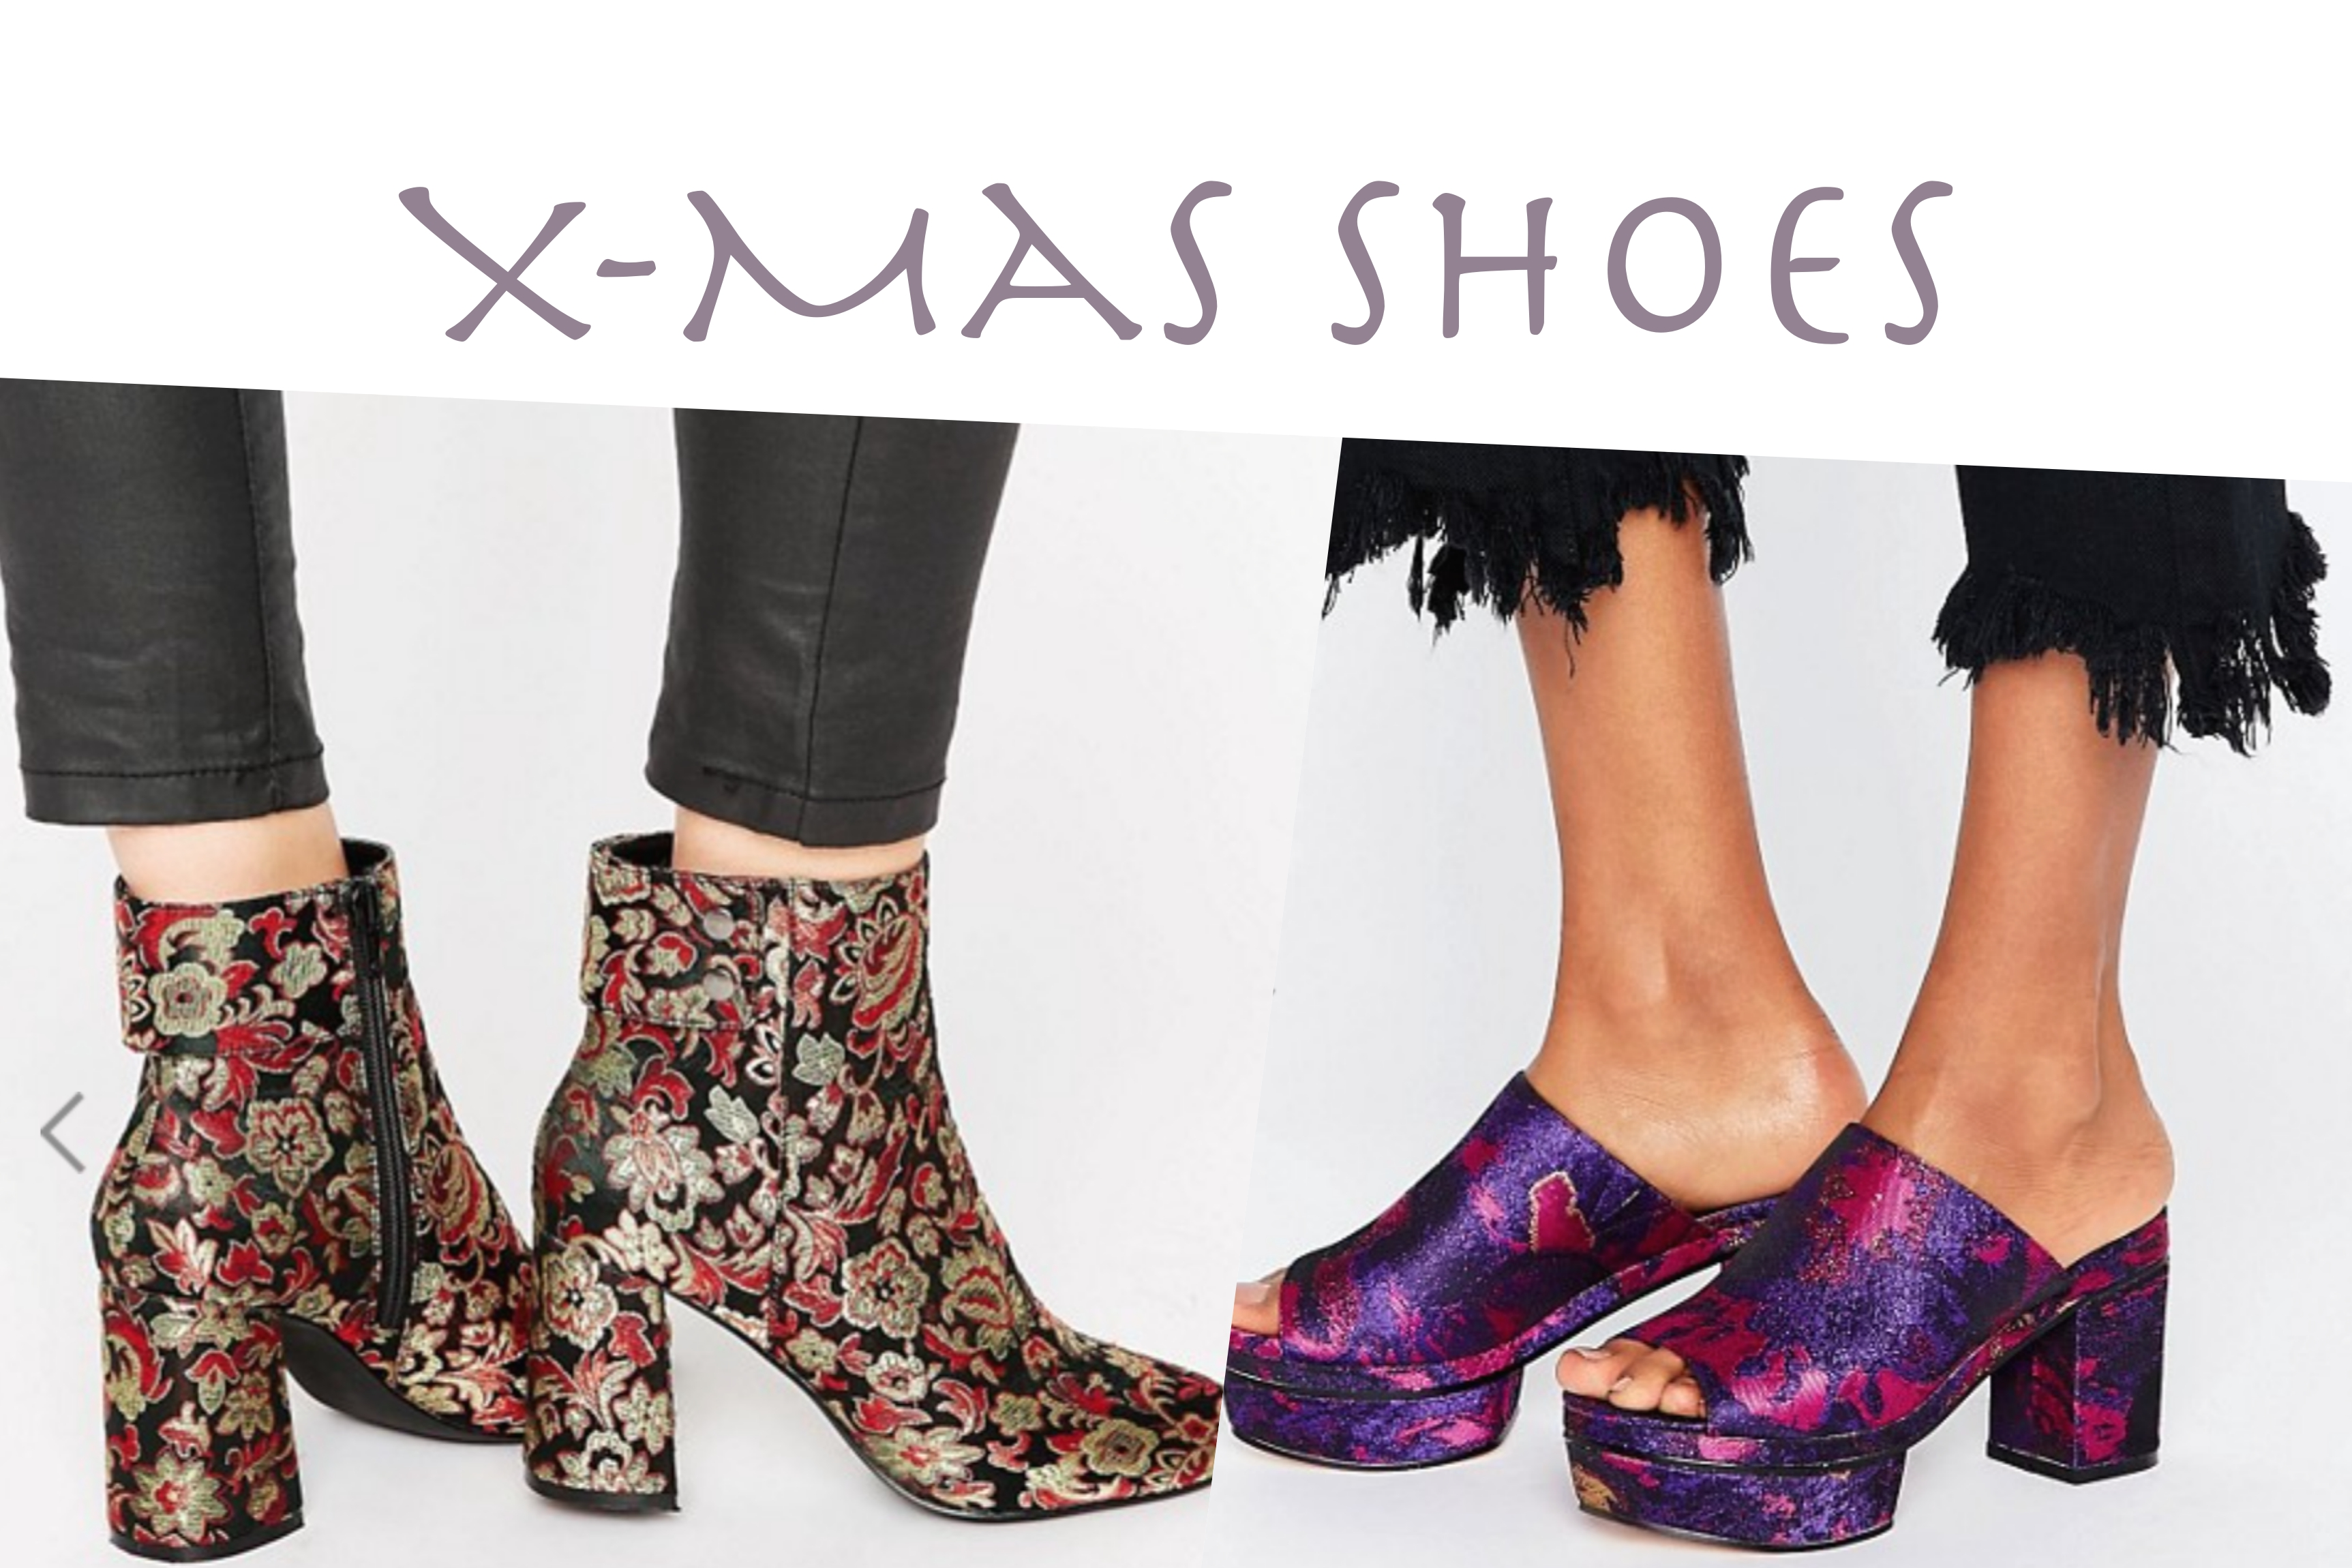 7. Dezember – Shoes for Xmas